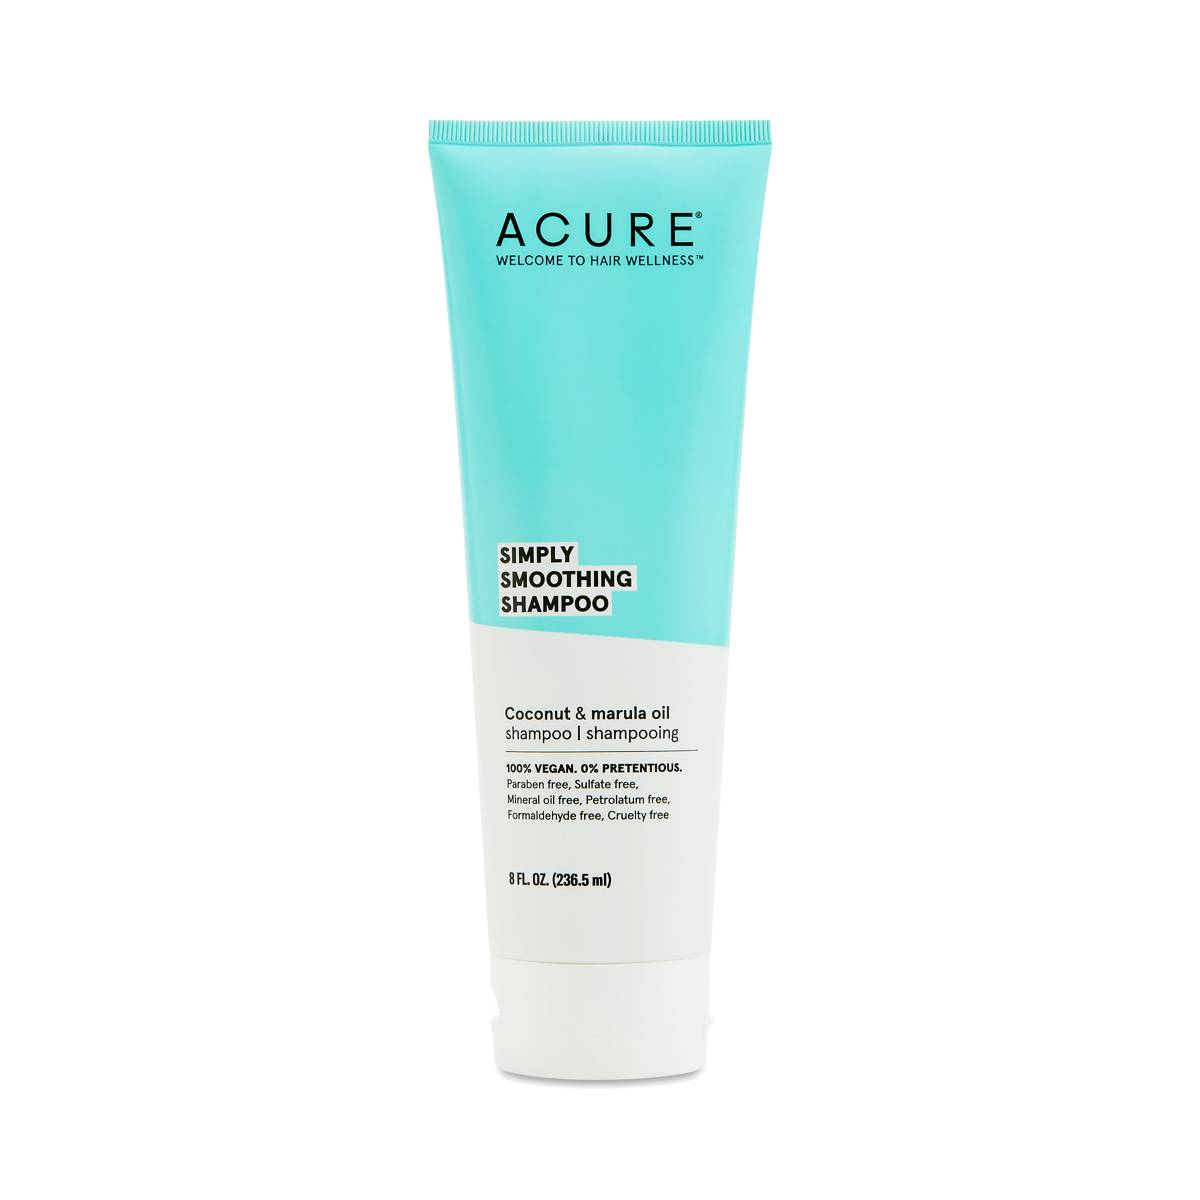 ACURE Simply Smoothing Shampoo, Coconut & Marula Oil